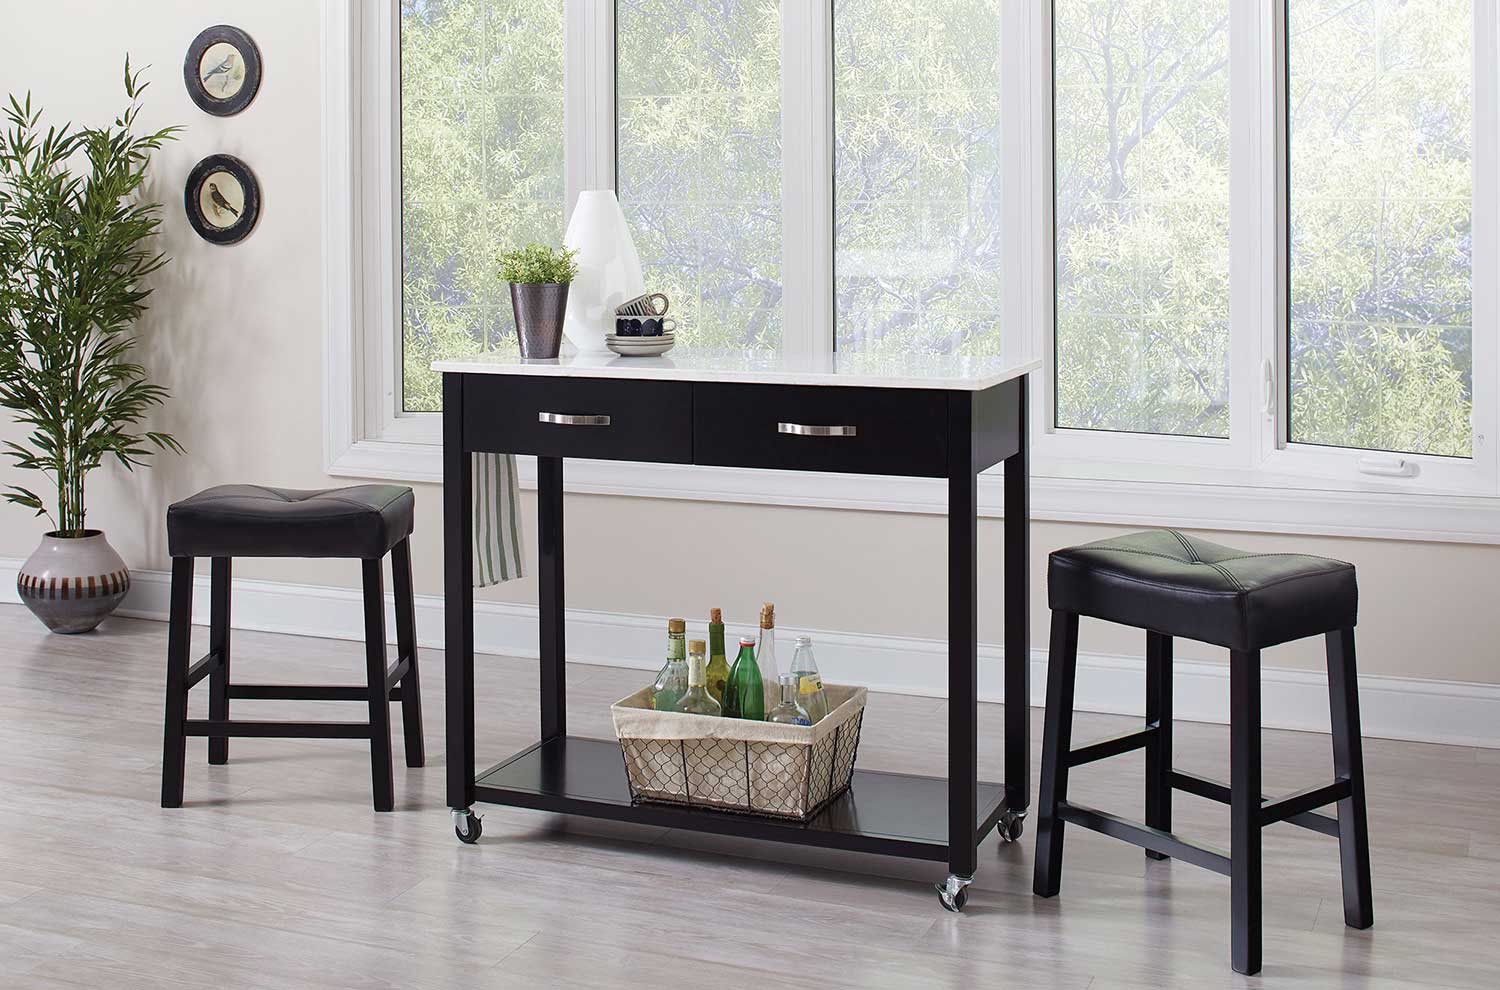 Coaster 102137 3 PC Counter Height Dining Set - Black